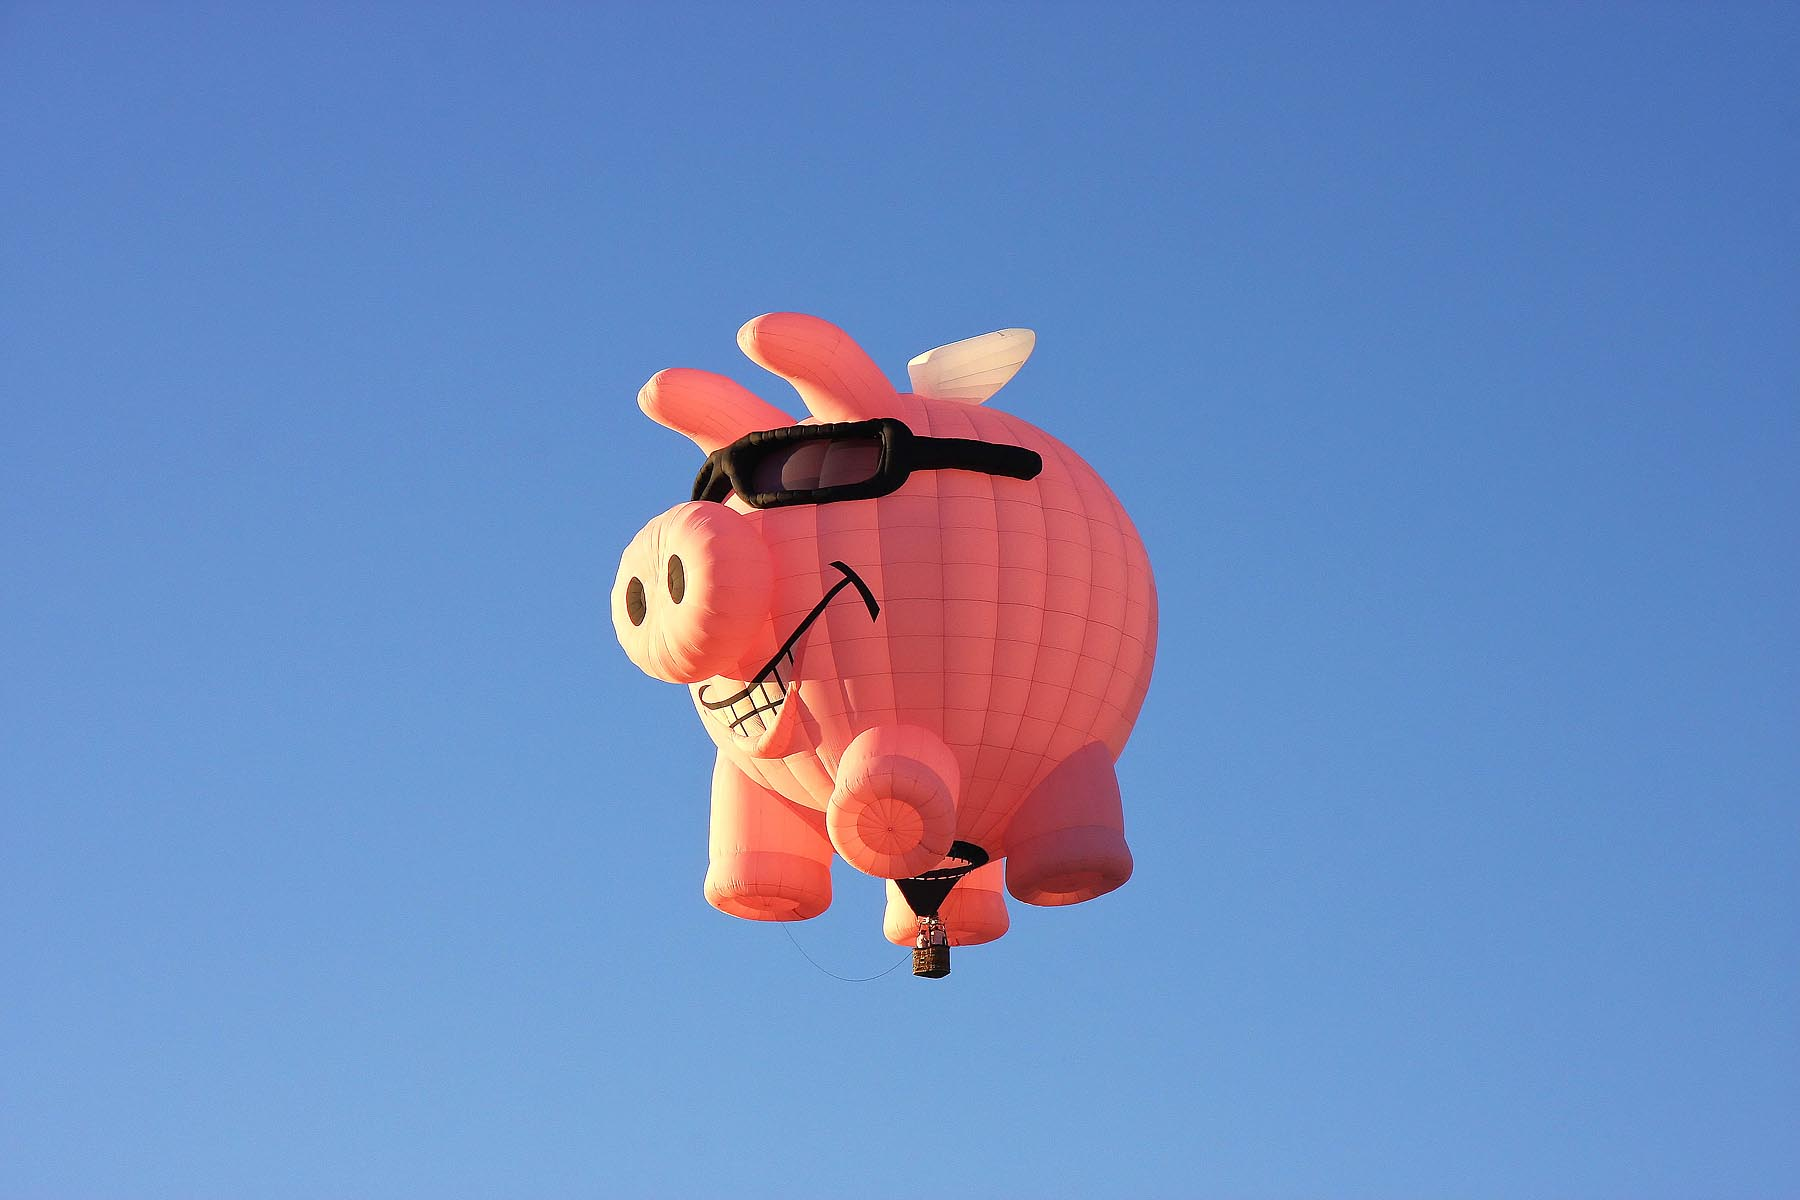 Flying Pig - Joe Myeress Photography